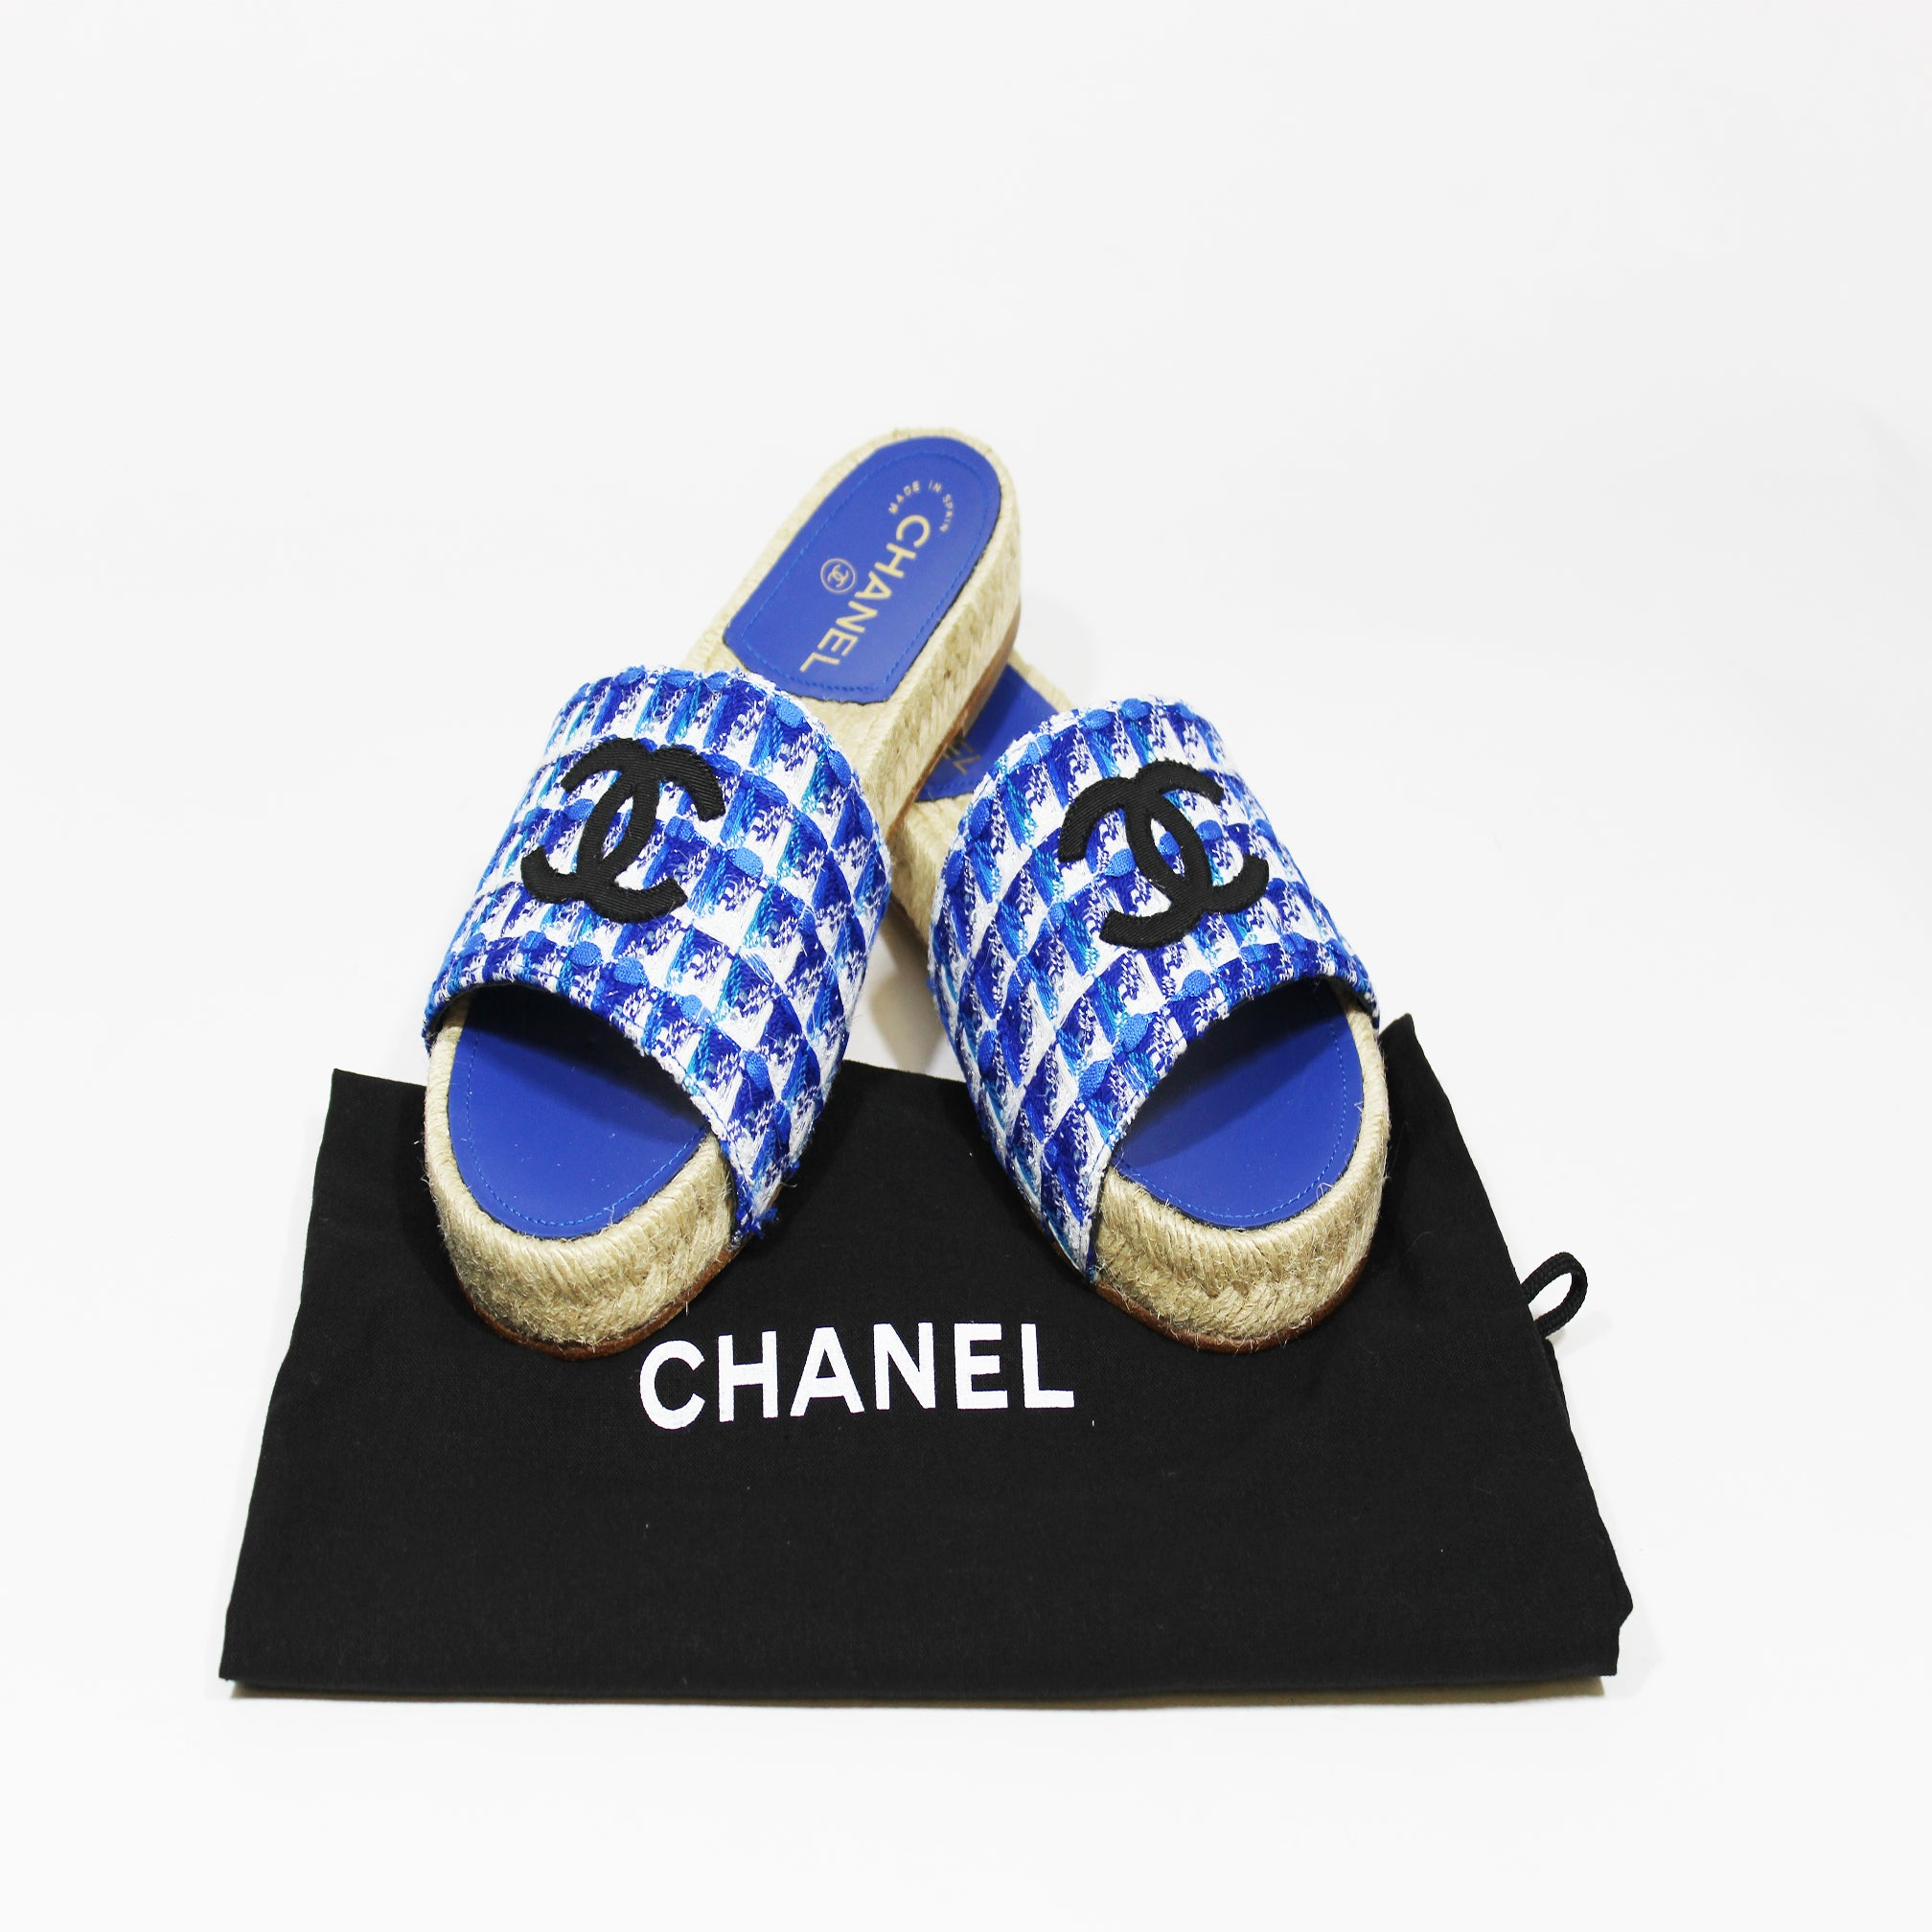 CHANEL 2018 Blue Tweed And Grosgrain Espadrille Black CC Mule Sandals 37